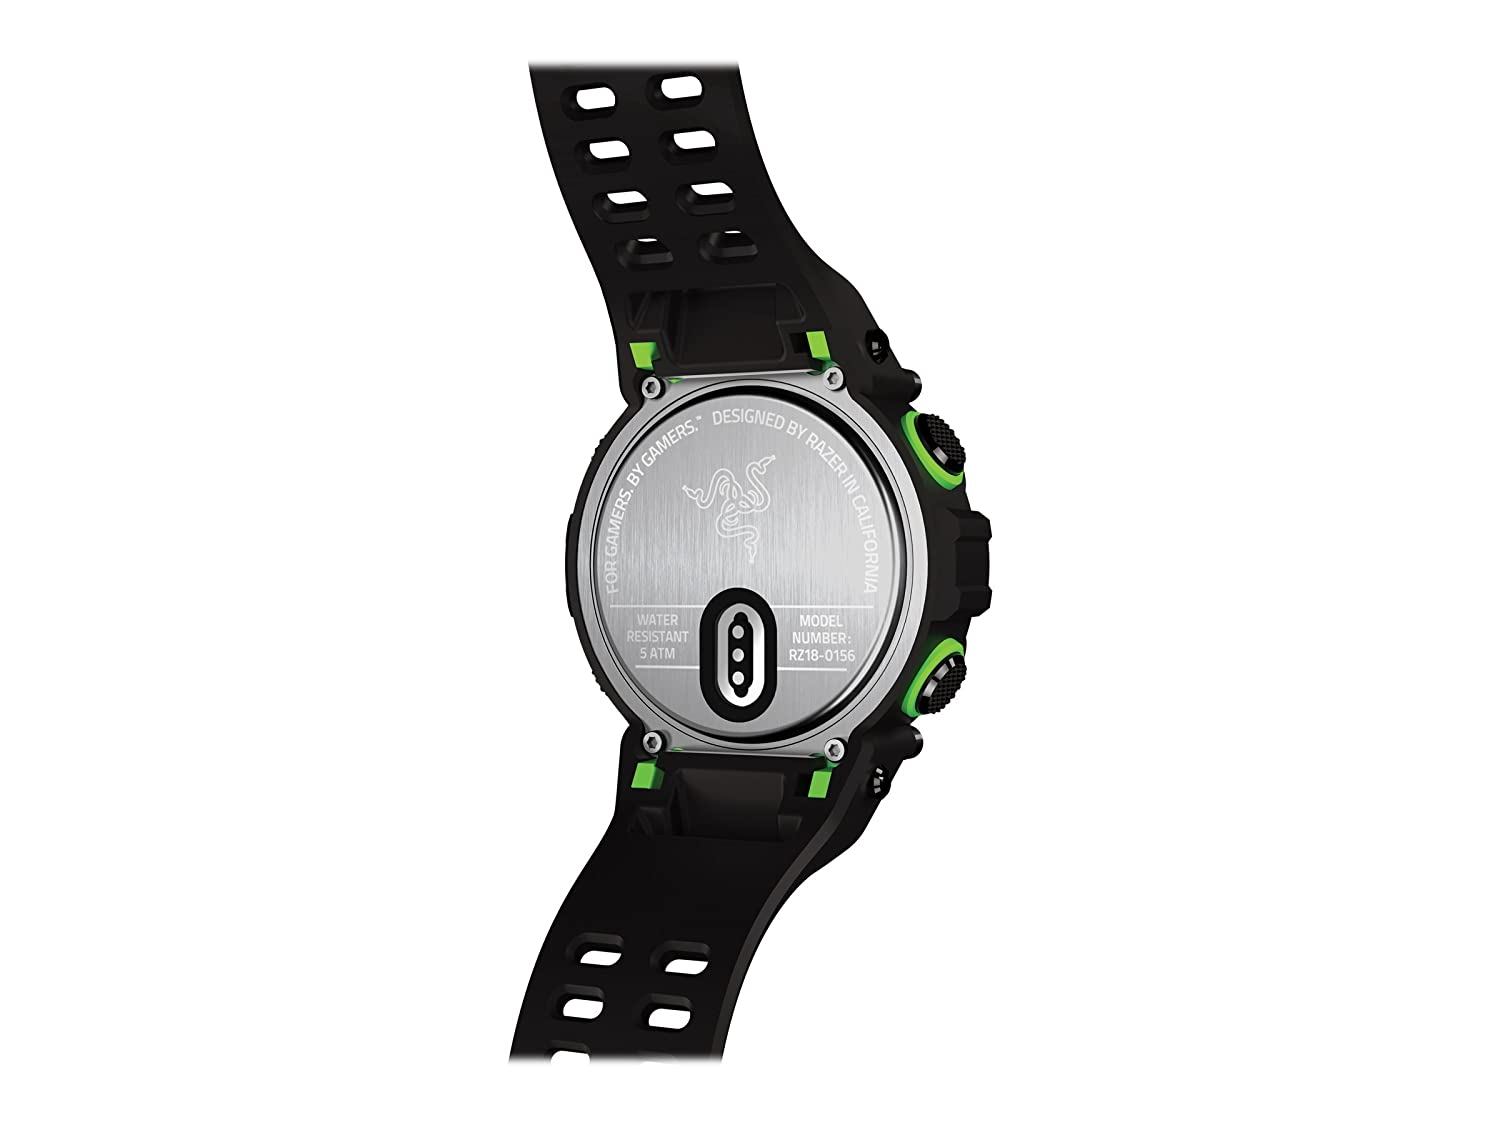 Razer Nabu Watch Cell Phones Accessories The Pebble Smart Will Include A Flexible Circuit Board